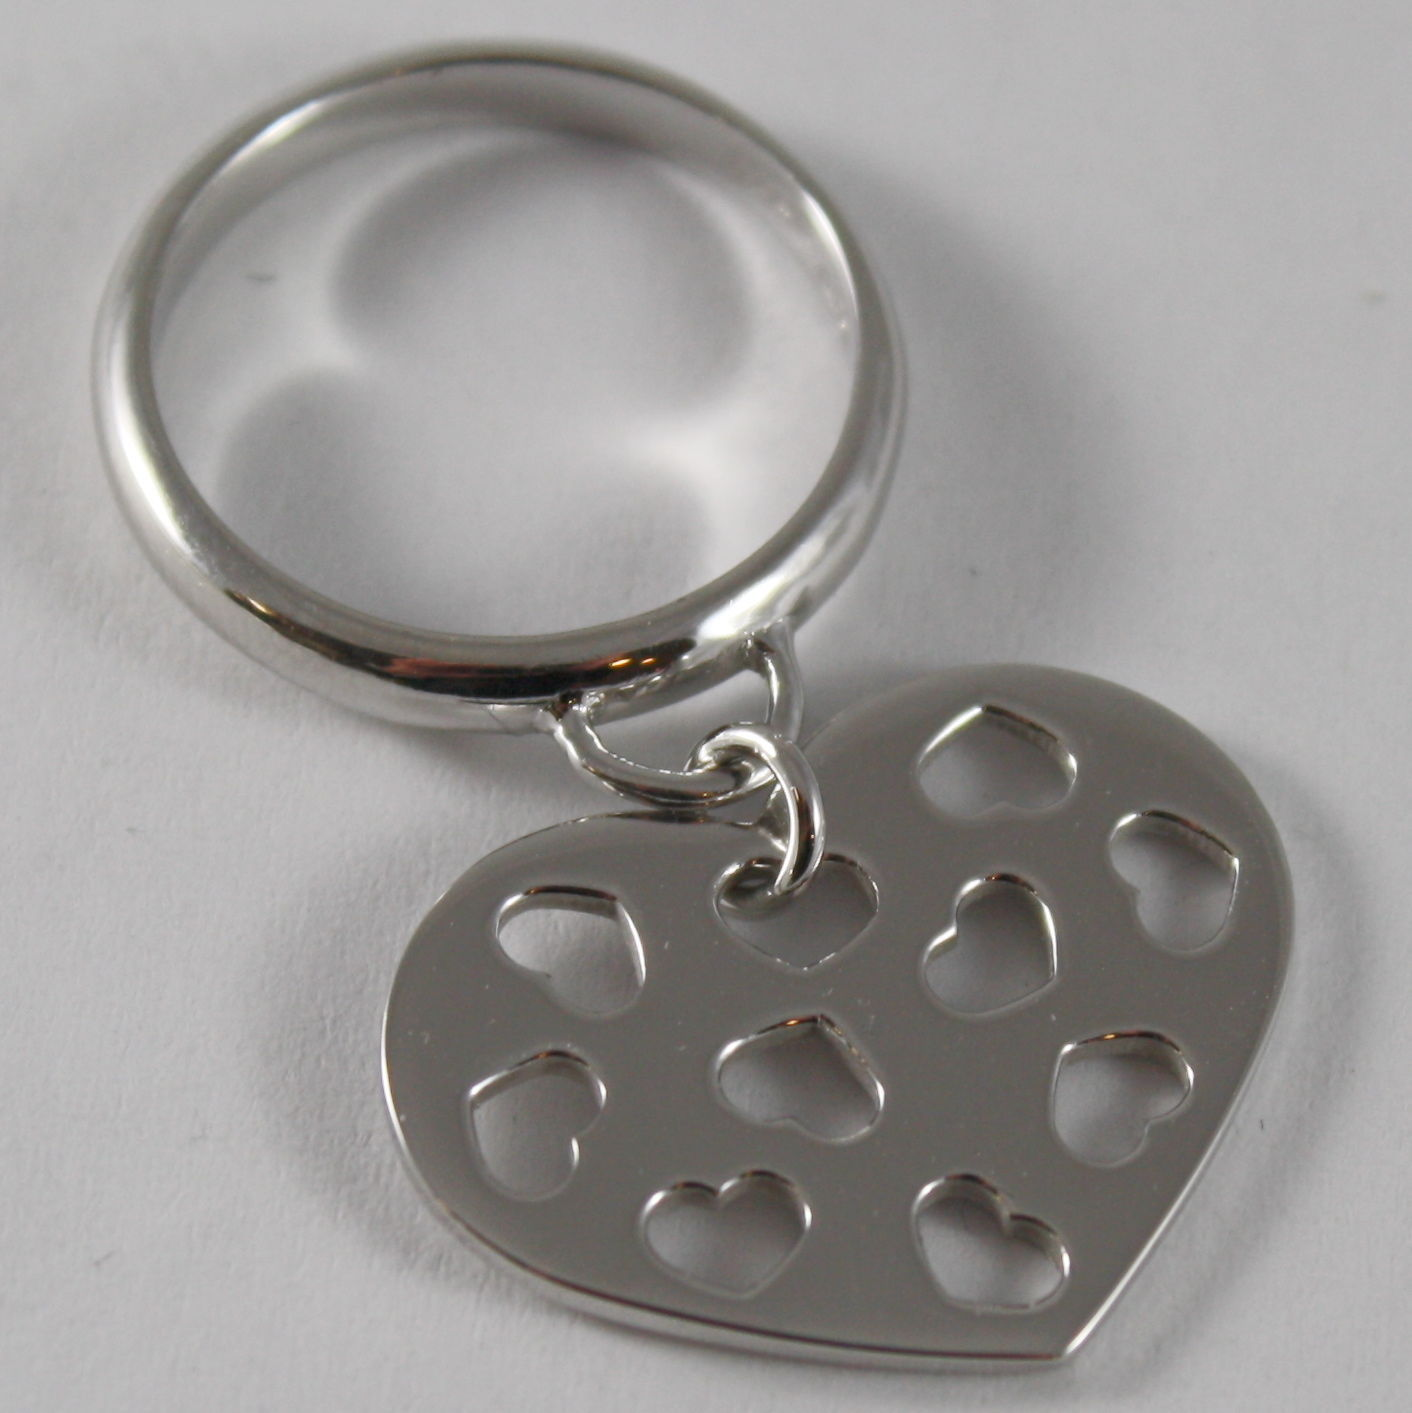 SOLID .925 RHODIUM SILVER RING WITH HEART PENDANT BY NANIS MADE IN ITALY